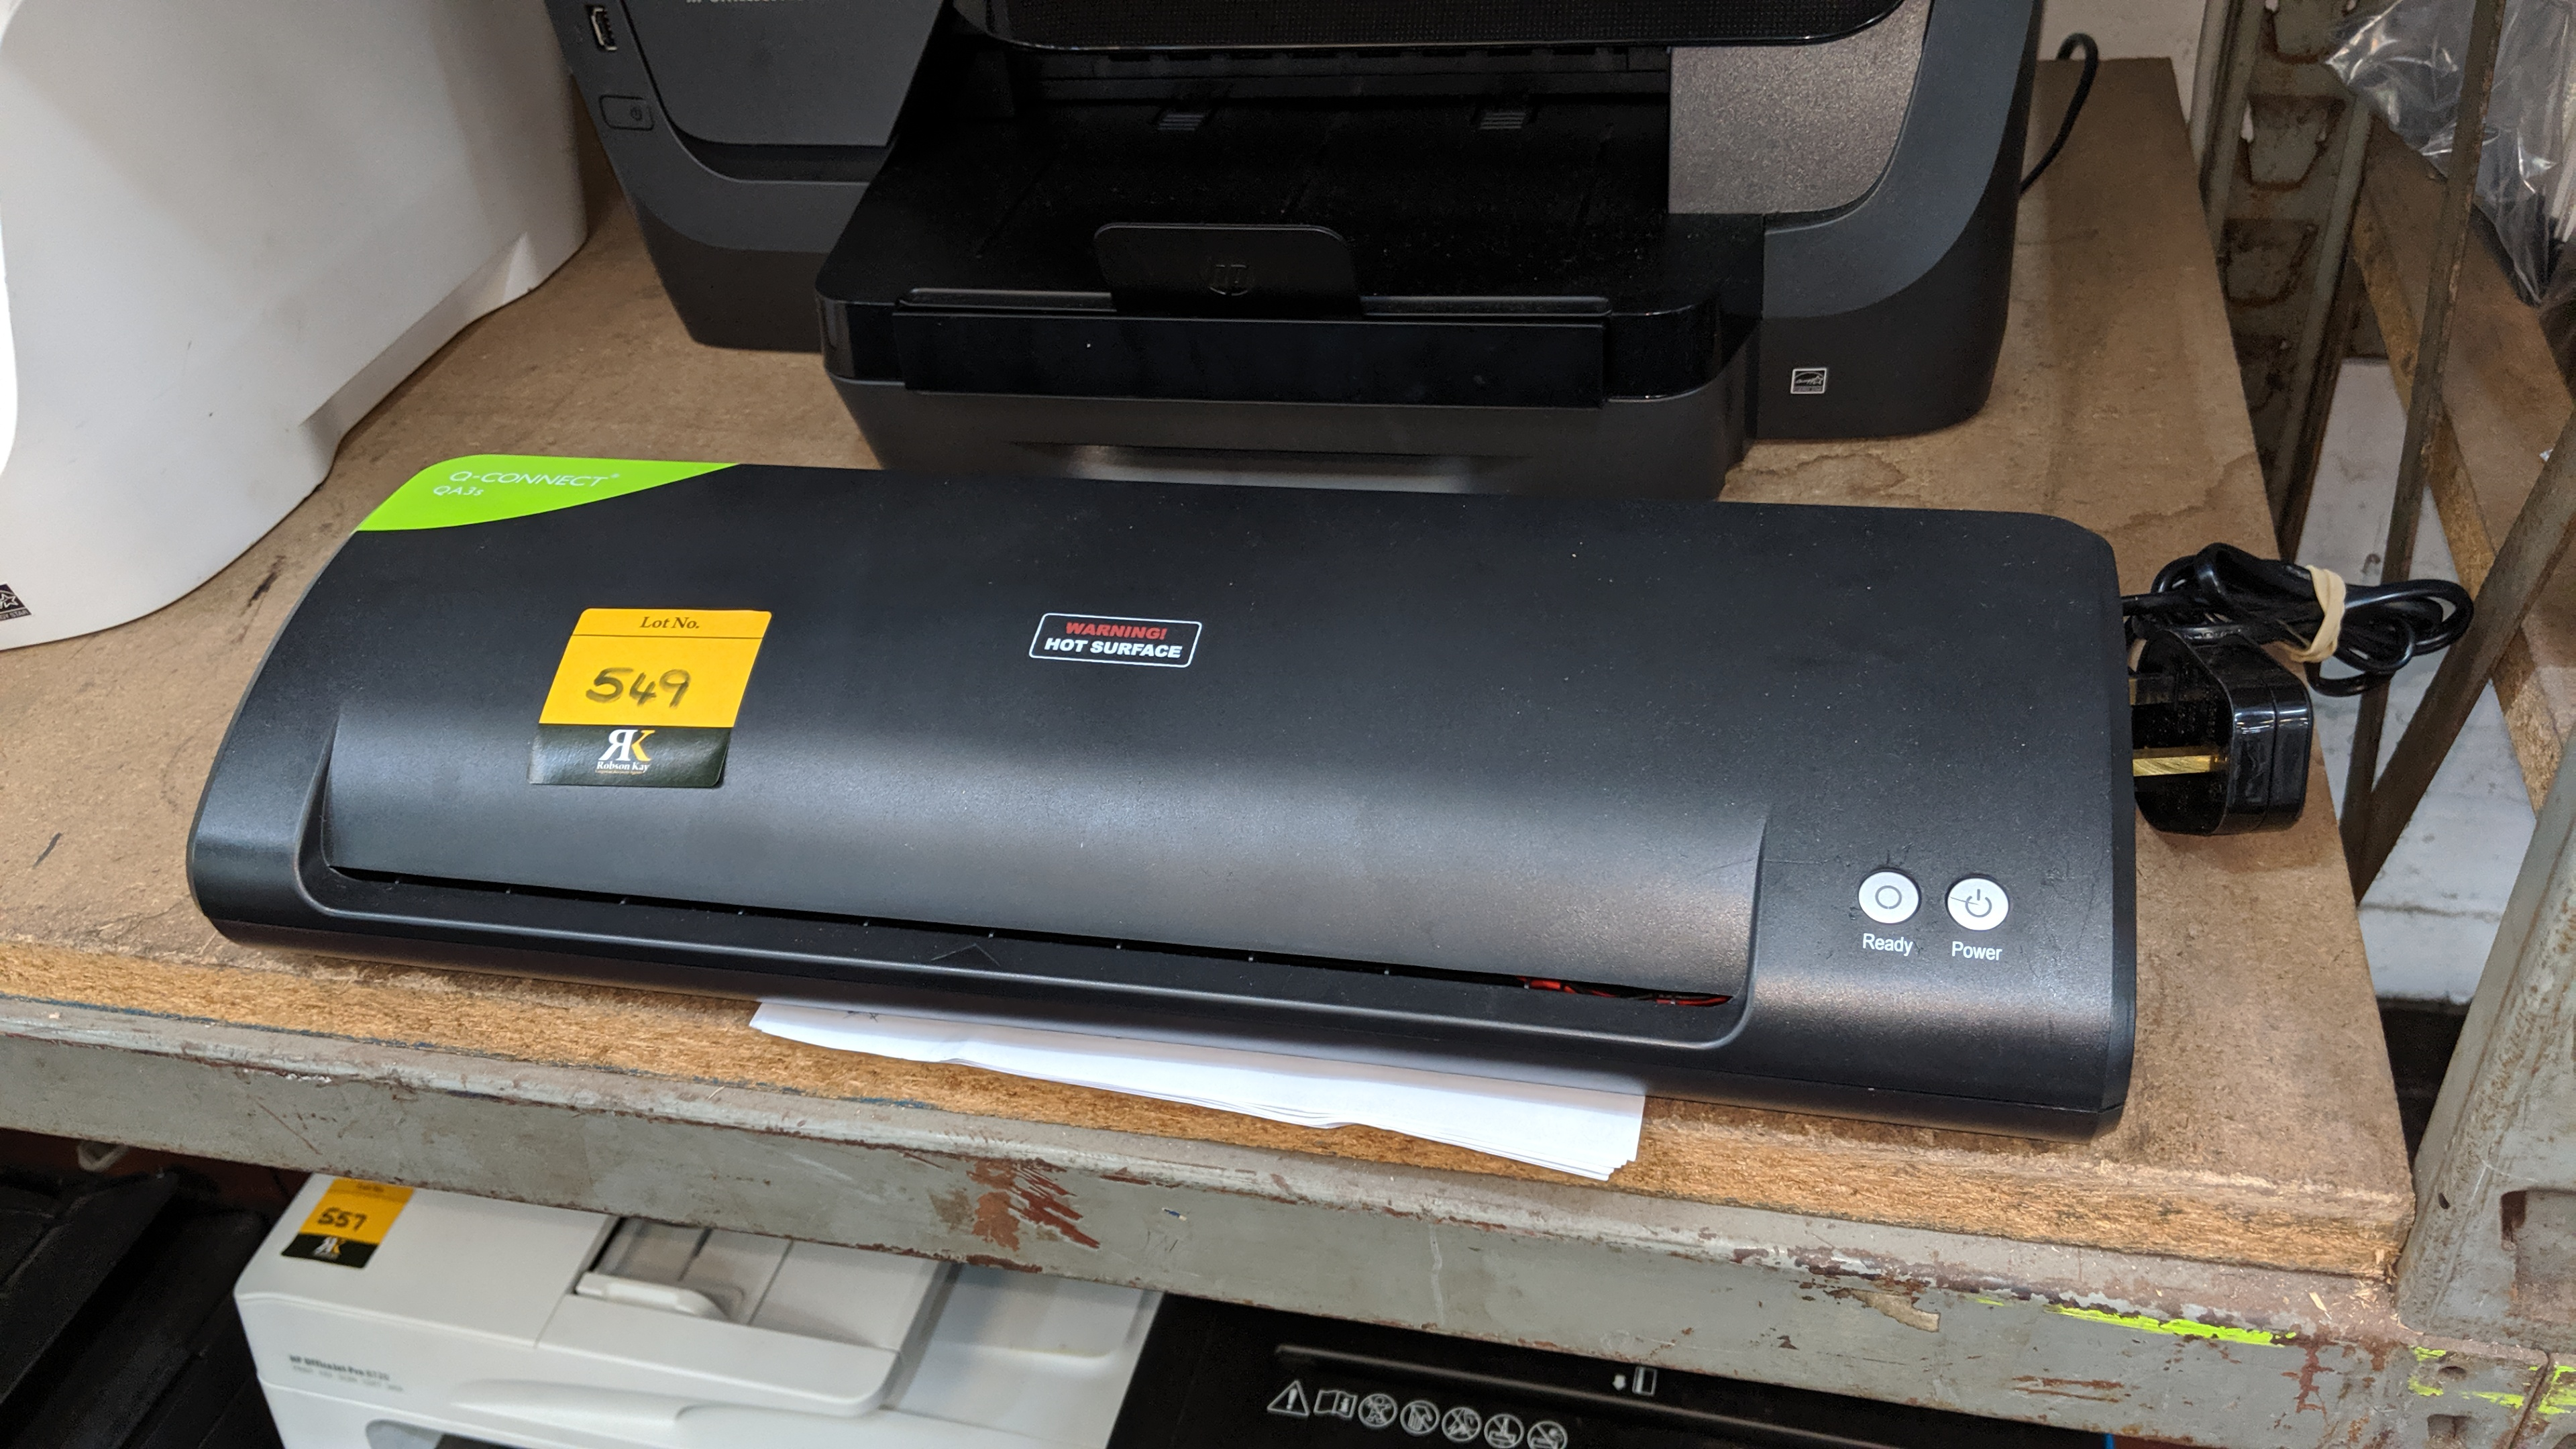 Lot 549 - Q-Connect QA3S A4 & A3 hot & cold laminator. This is one of a large number of lots used/owned by One